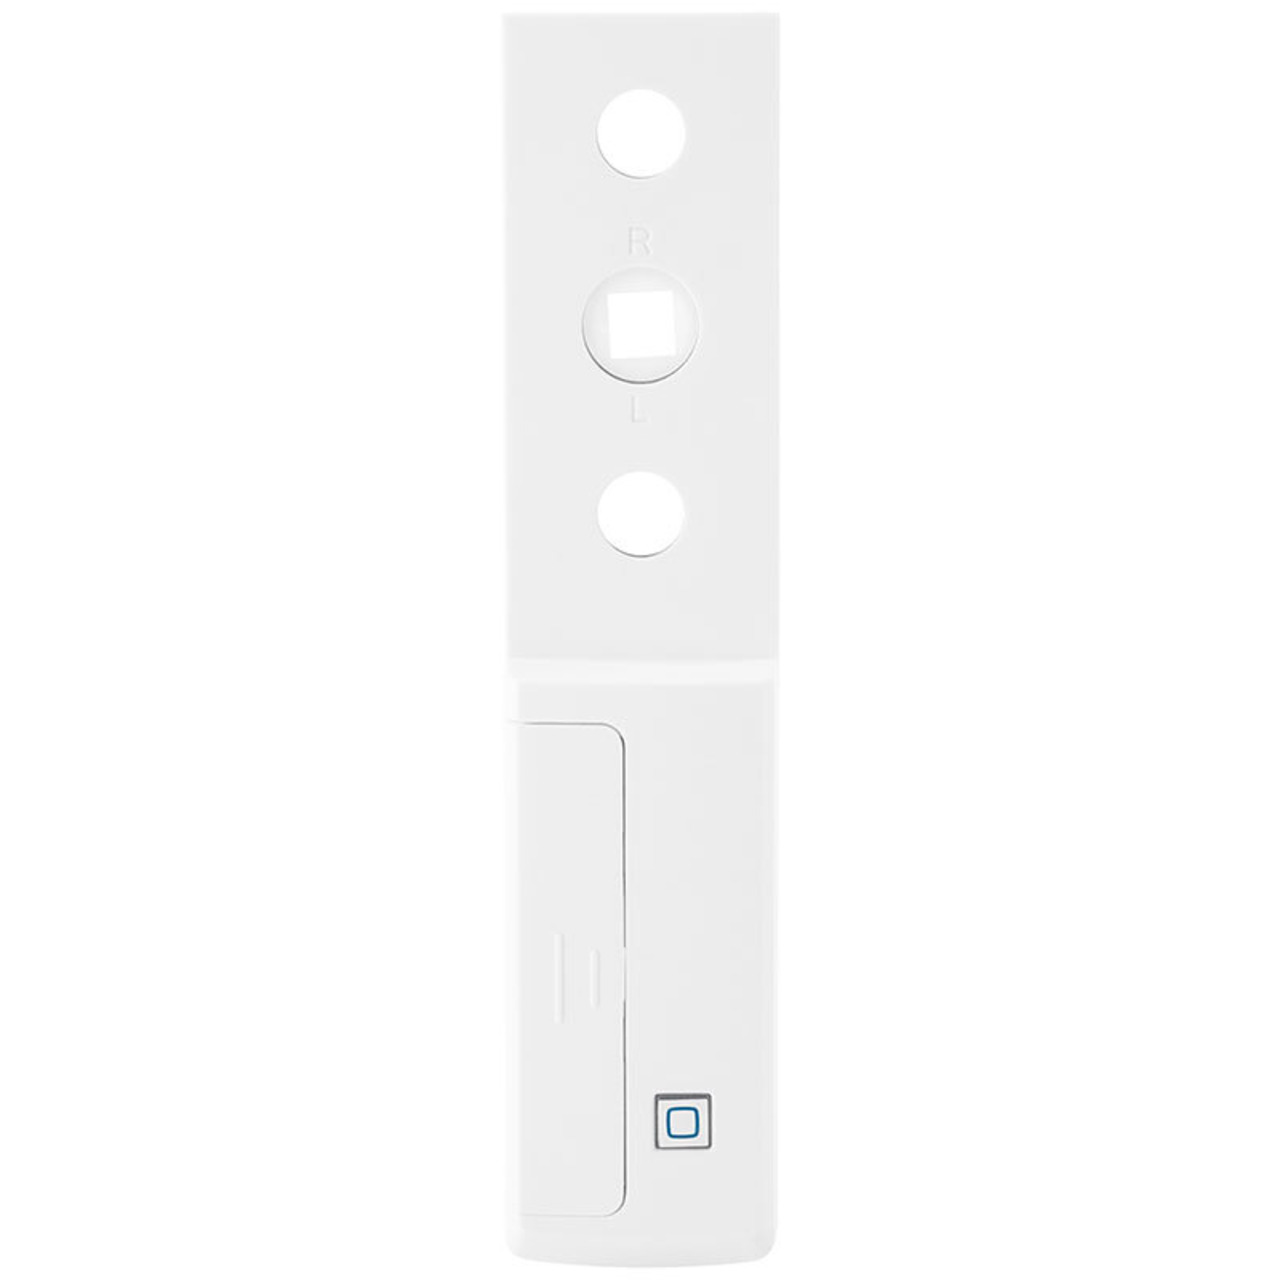 Homematic IP Fenstergriffsensor HmIP-SRH für Smart Home - Hausautomation